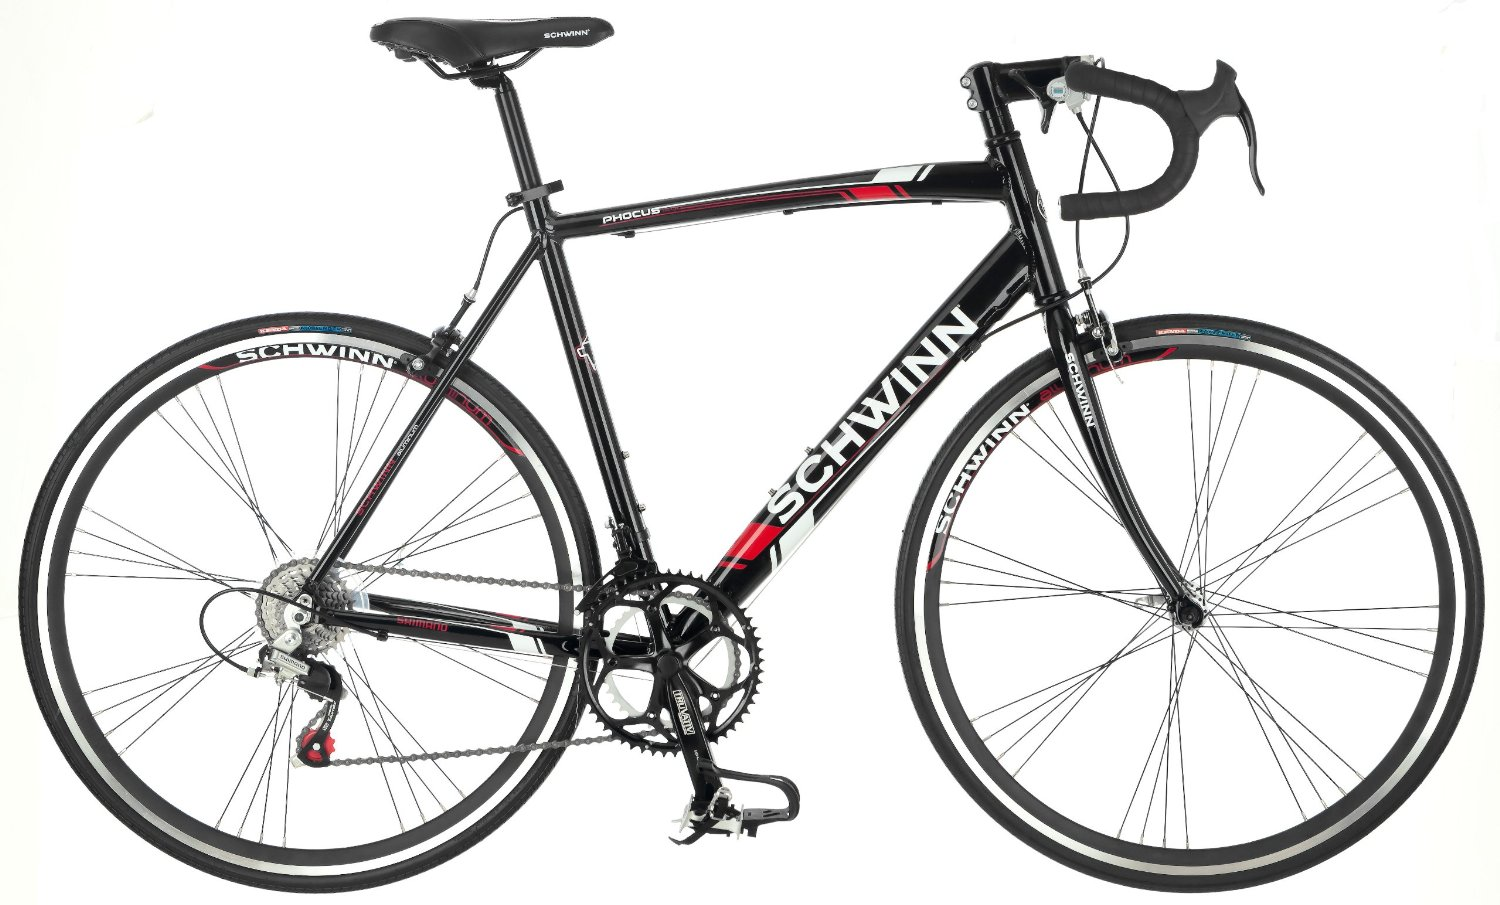 Schwinn Mens Phocus 1400 700C Drop Bar Road Bicycle